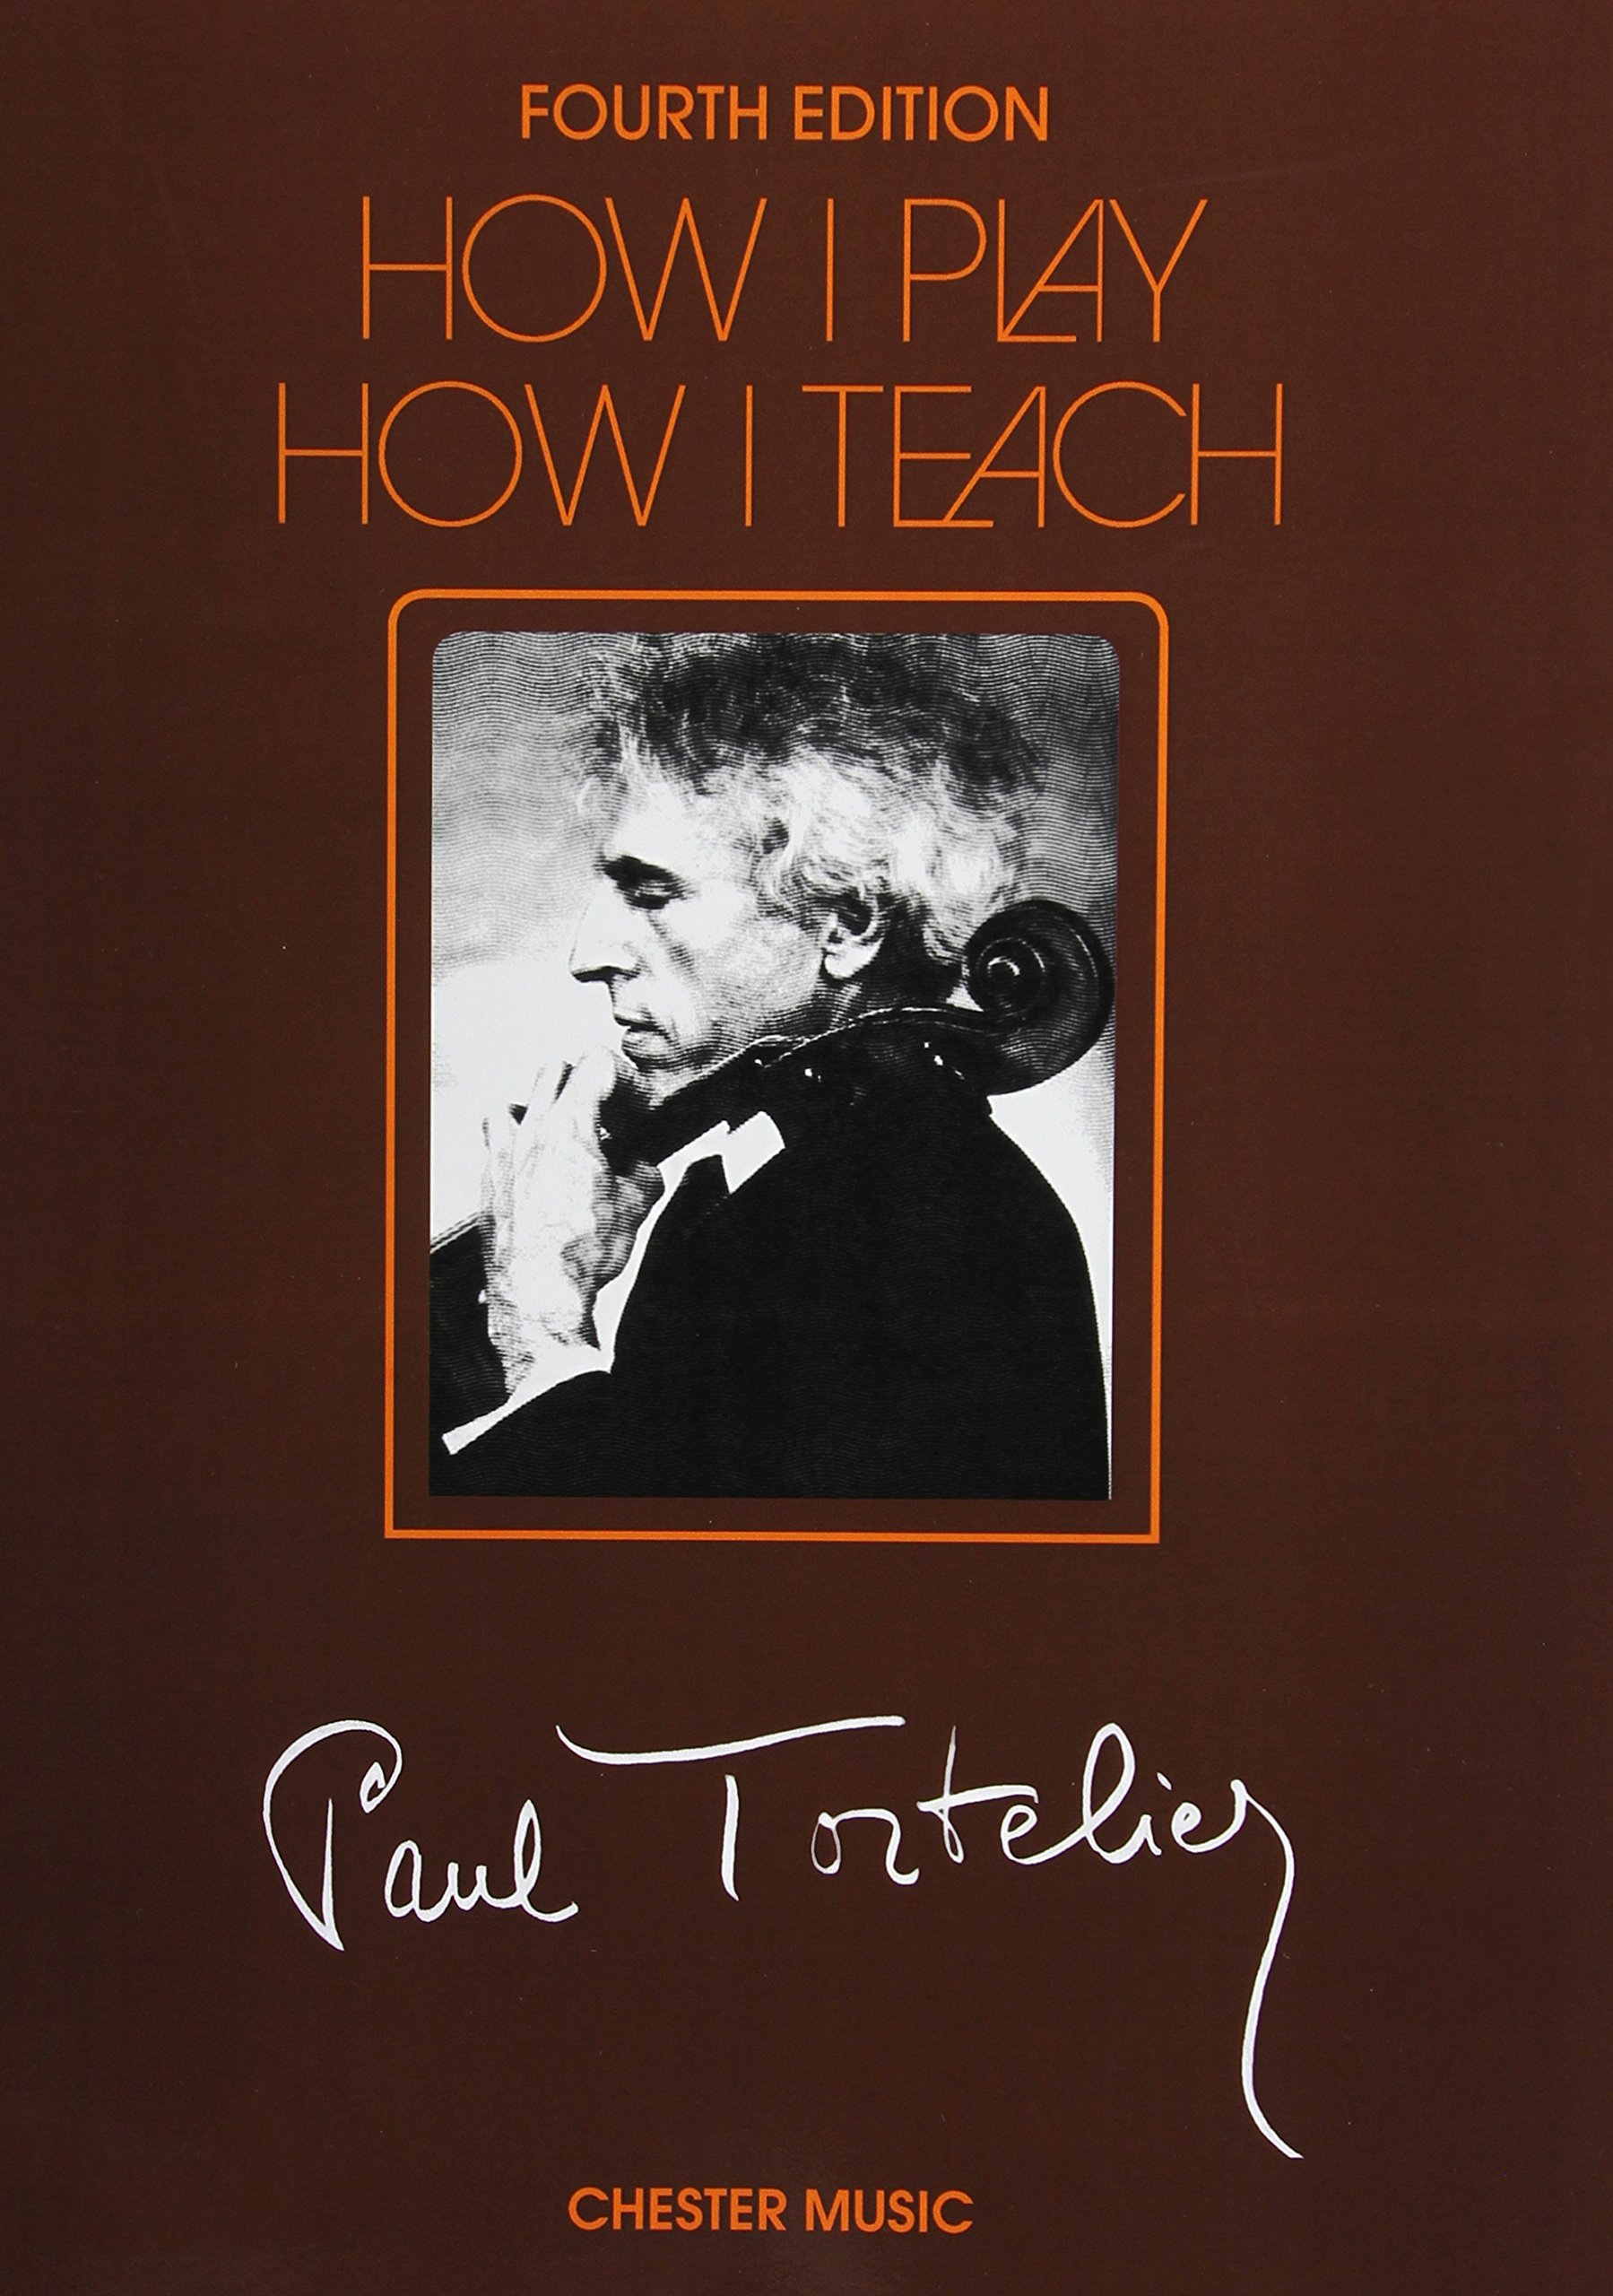 HOW I PLAY  HOW I TEACH      A CELLO METHOD BY THE CELEBRATED TORTELIER 4TH EDITION